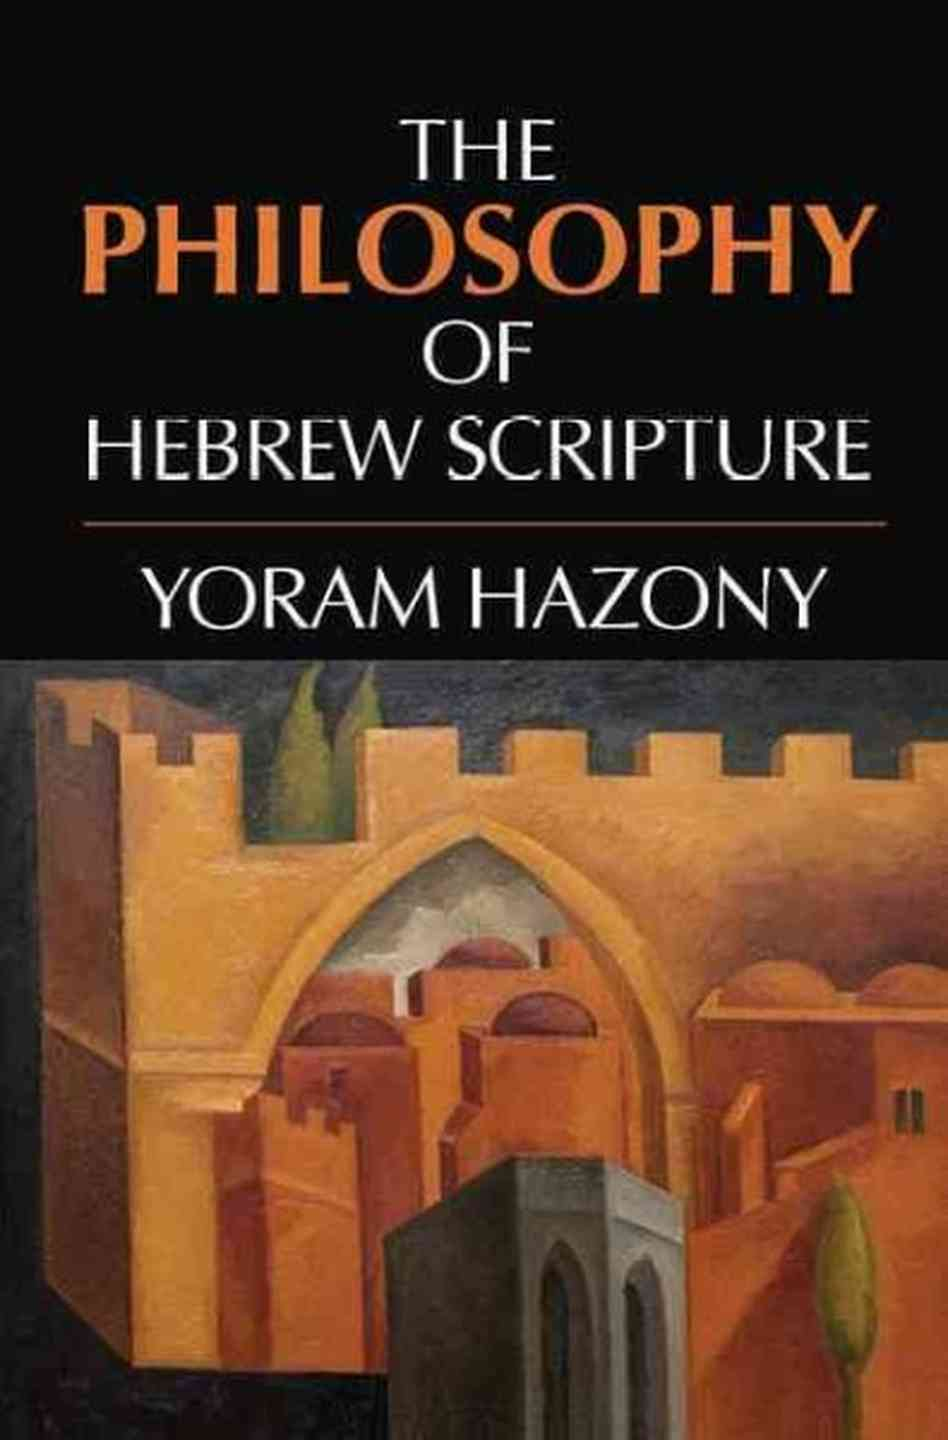 The Philosophy Of A Hashtag Strategy: The Philosophy Of Hebrew Scripture: A Review